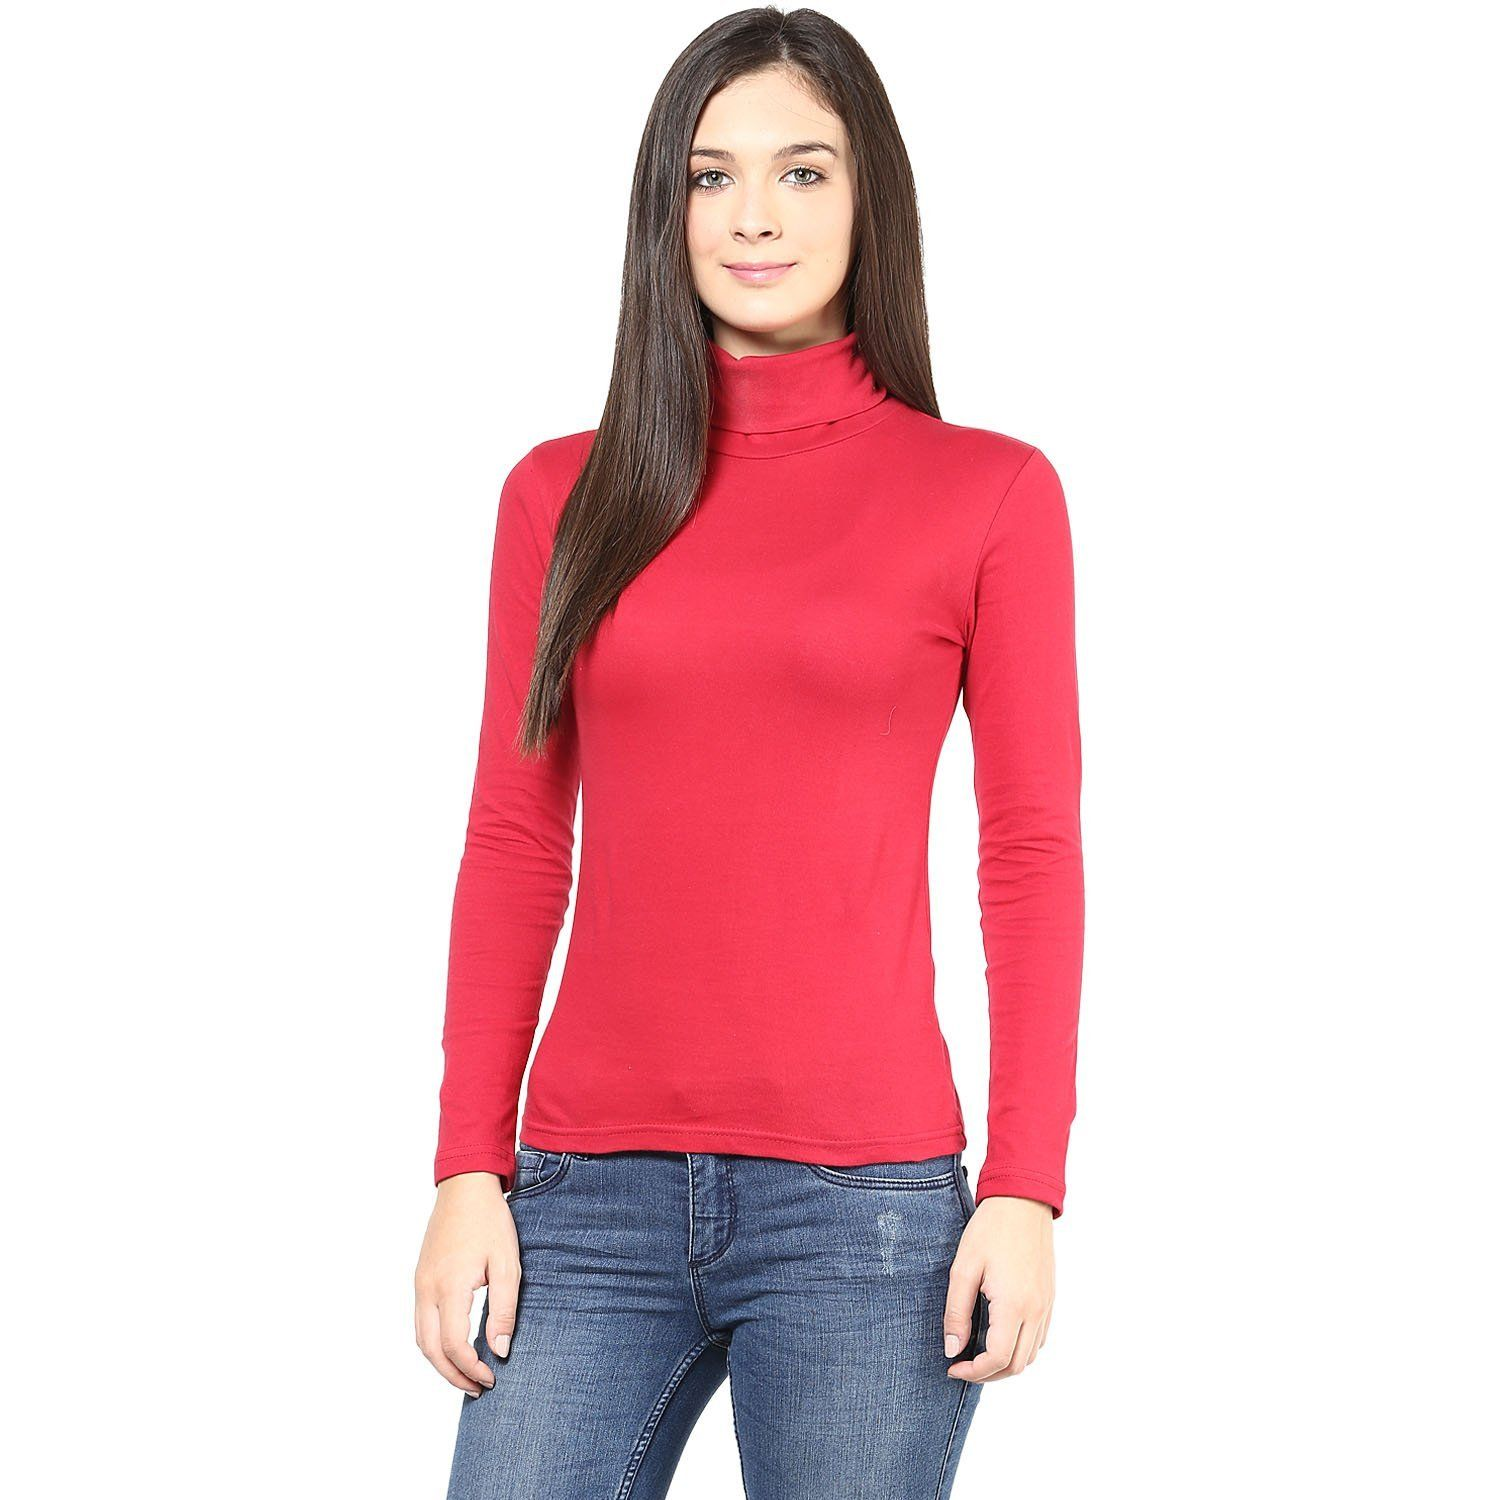 Hypernation Red Cotton High Neck T-Shirts for Women Color